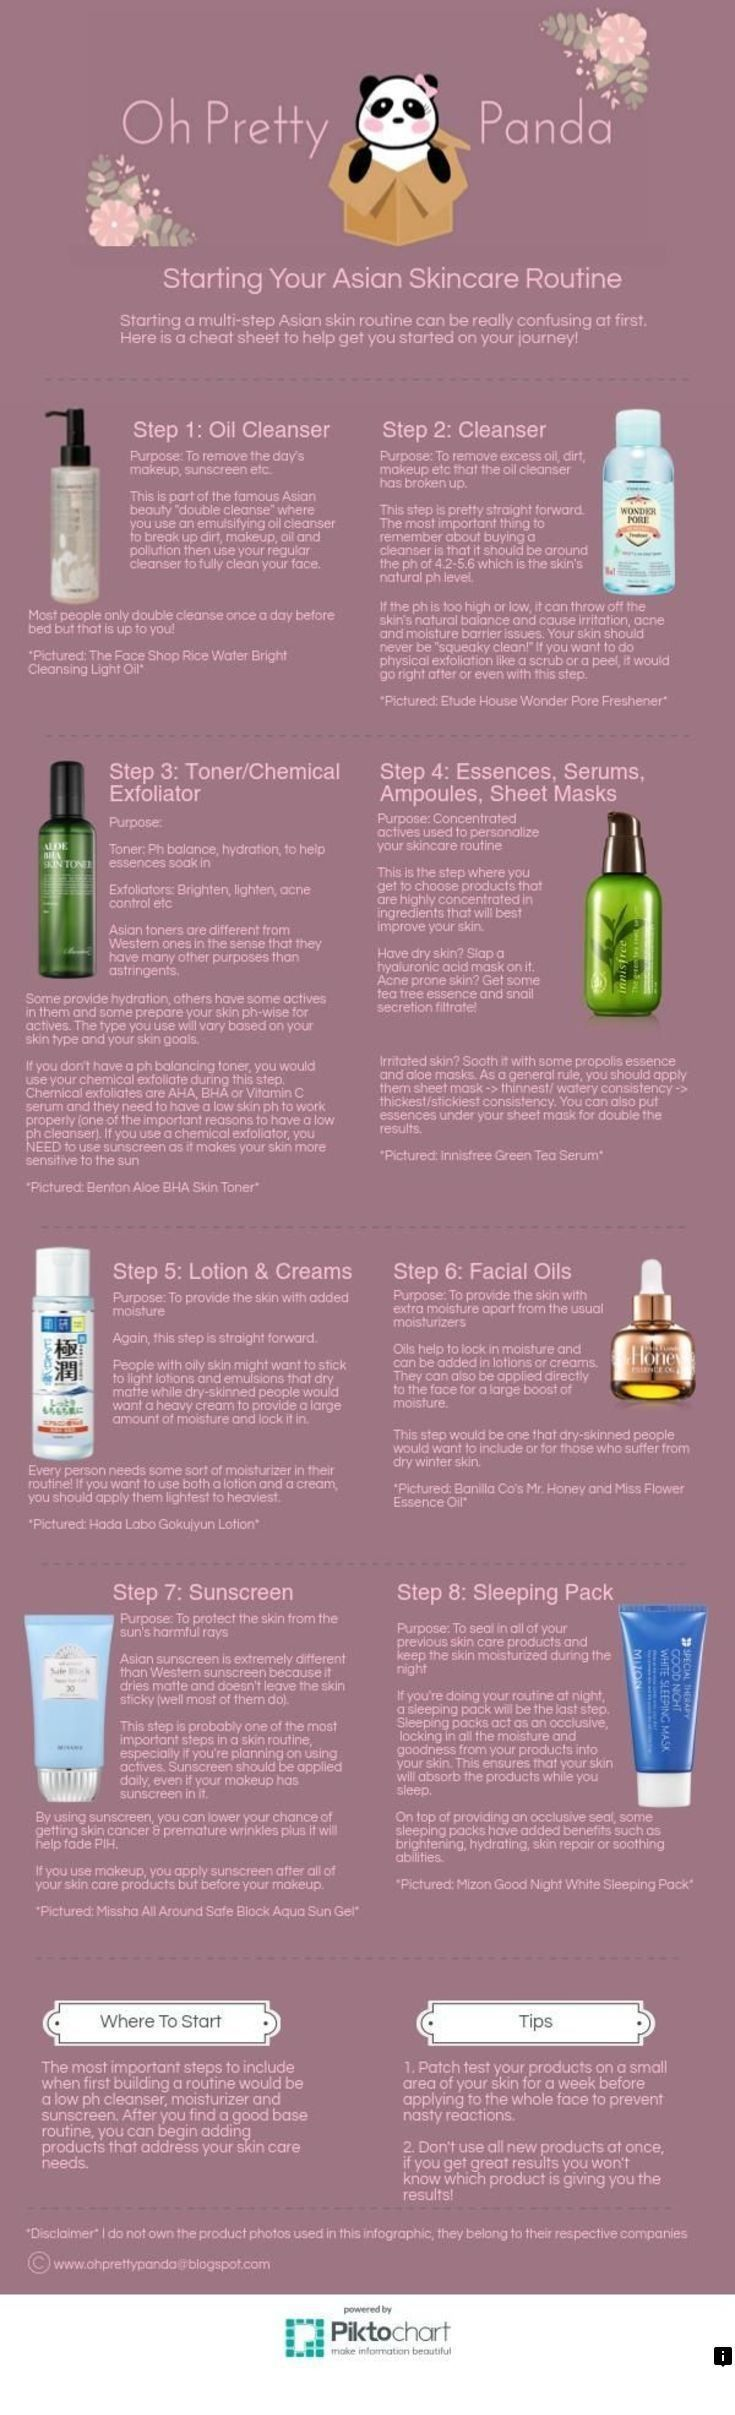 Read More About Best Skin Care Line Just Click On The Link For More Enjoy The Website Asian Skincare Skin Care Skin Care Routine